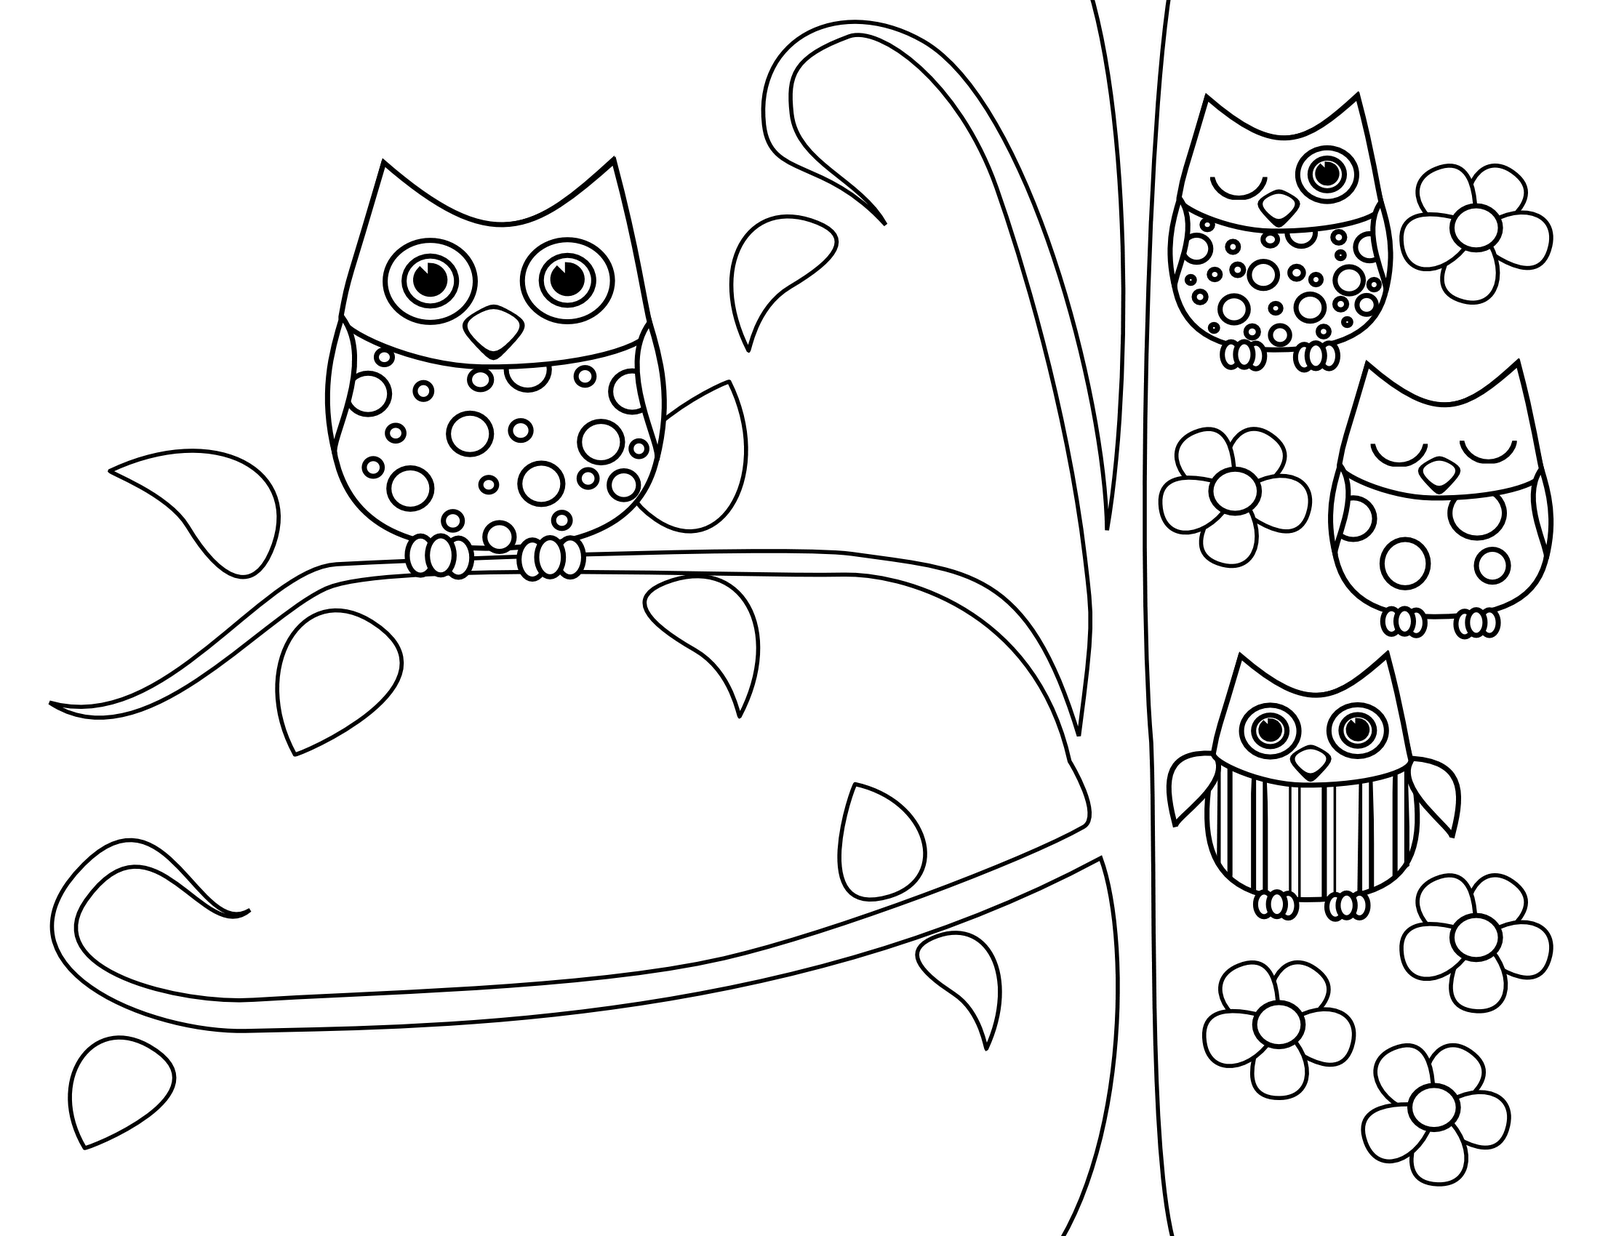 115 best coloring pages images on Pinterest Drawings Adult